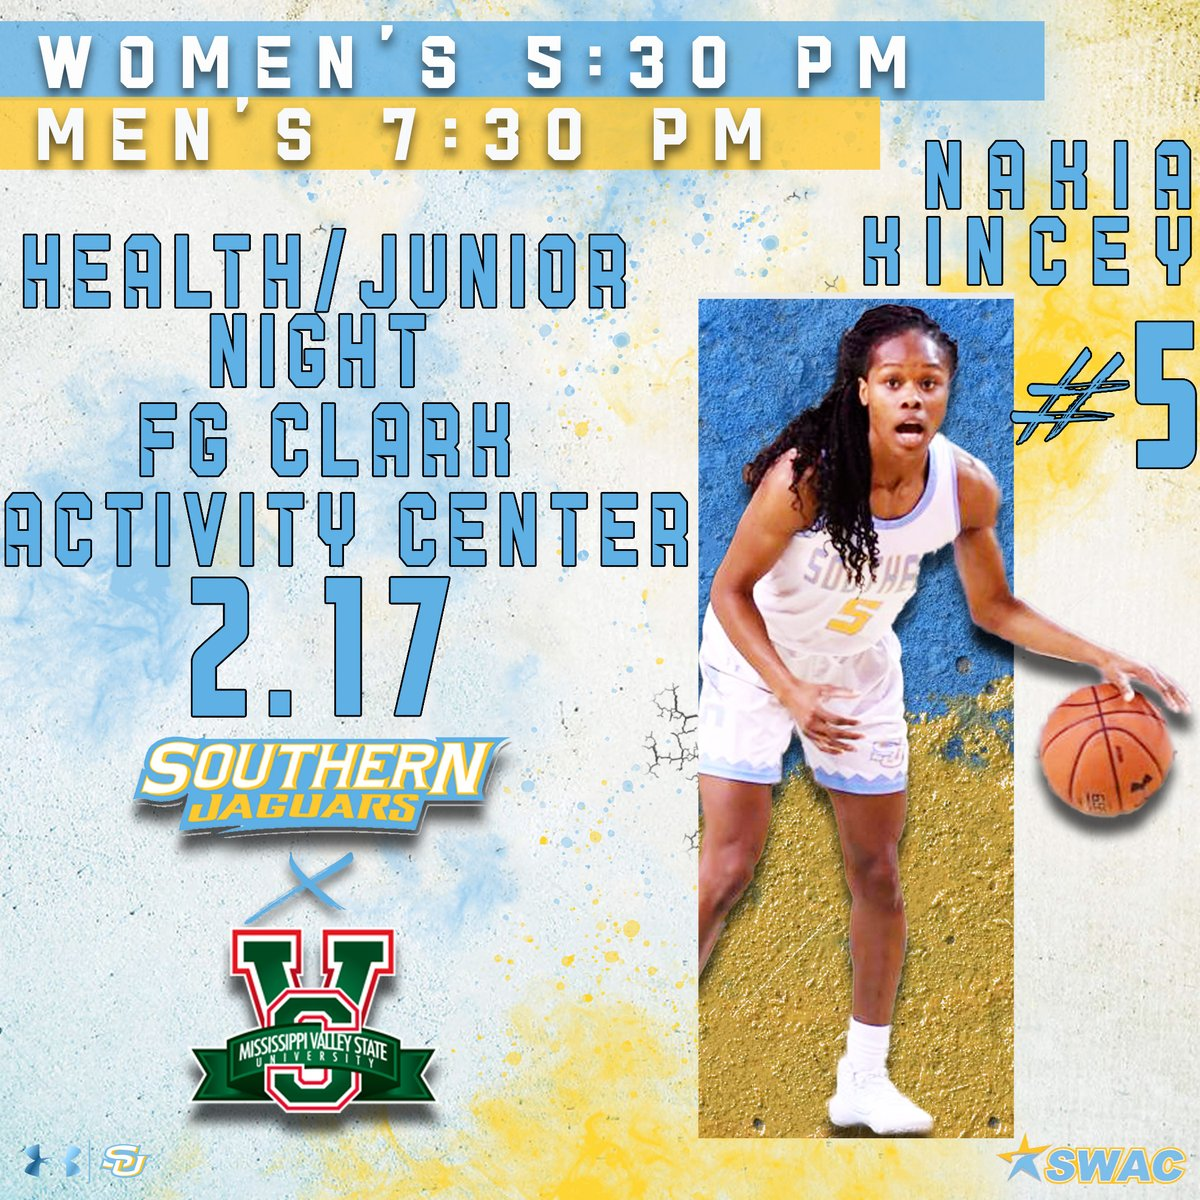 Jaguar Fans,  Join us for Health/Junior Night as the Jaguars face Mississippi Valley at 5:30pm and 7:30pm. Group tickets can be purchased at the ticket office or via phone at 2257713171. #GoJags pic.twitter.com/uu3EIFT1mA